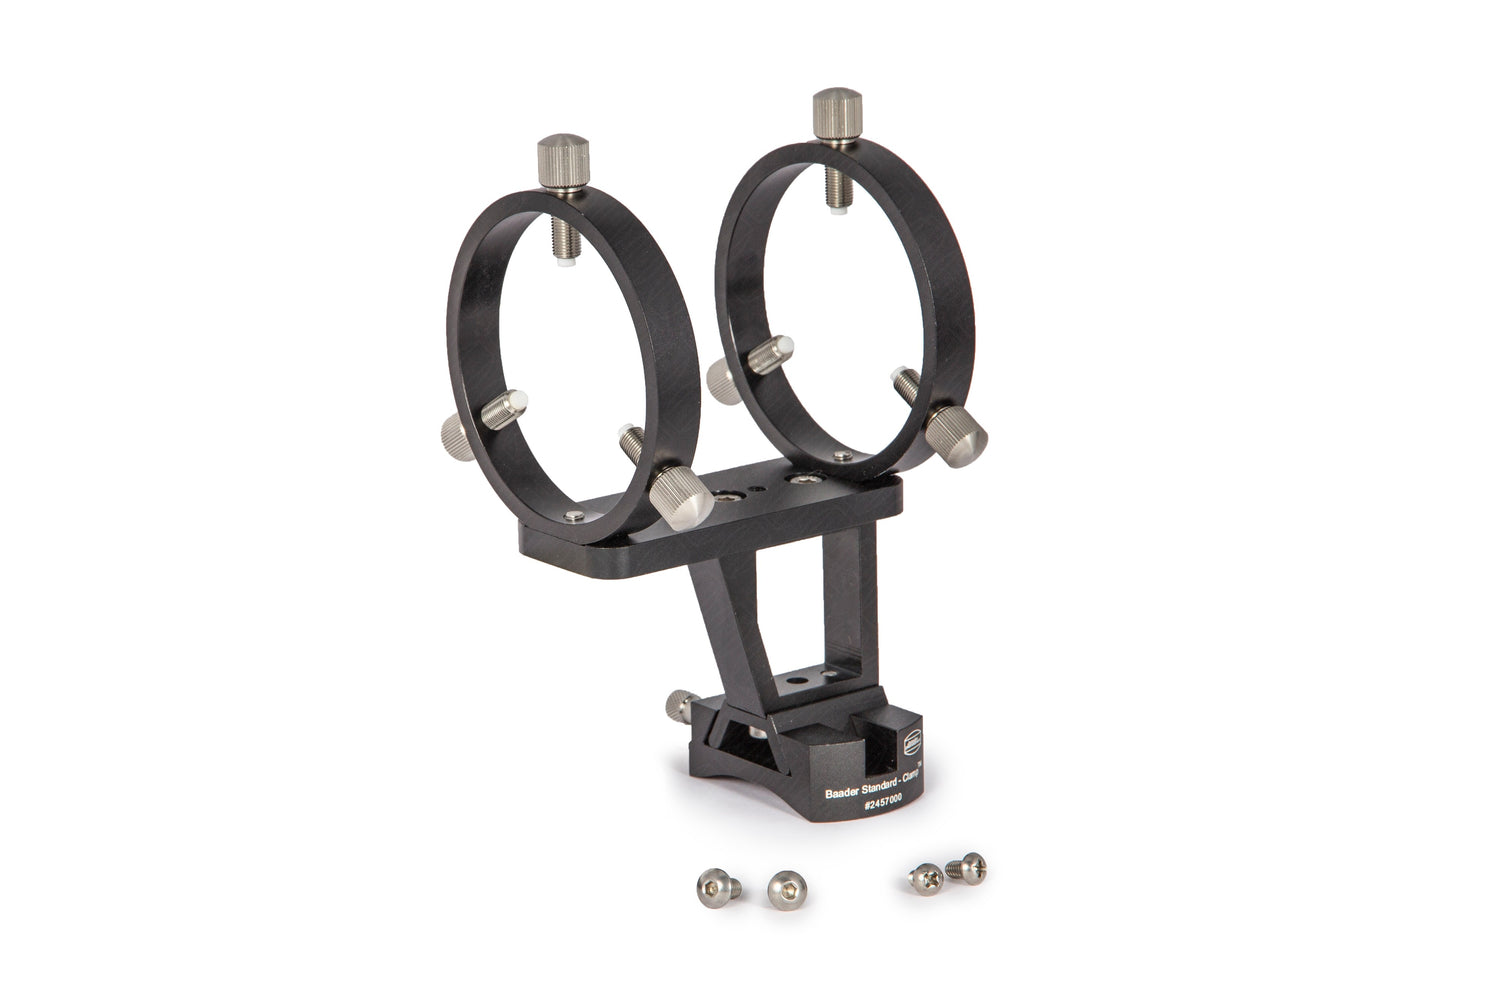 Baader MQR IV Multipurpose Finder Bracket for Finderscopes up to 60mm Aperture